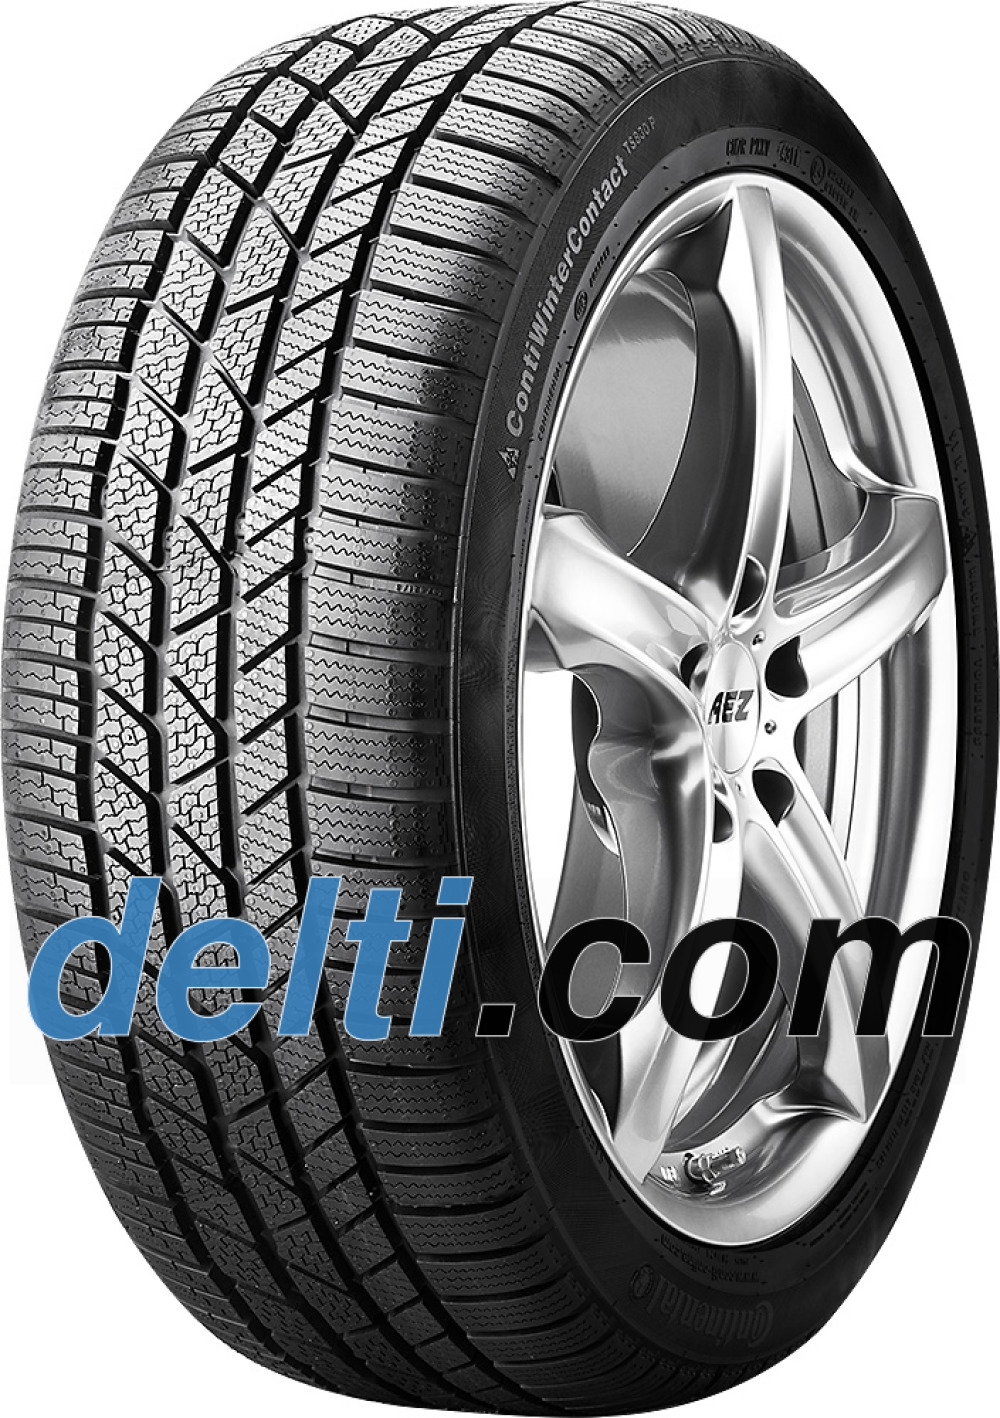 Continental WinterContact TS 830P ( 265/30 R20 94V XL , mit Felgenrippe, RO1 )